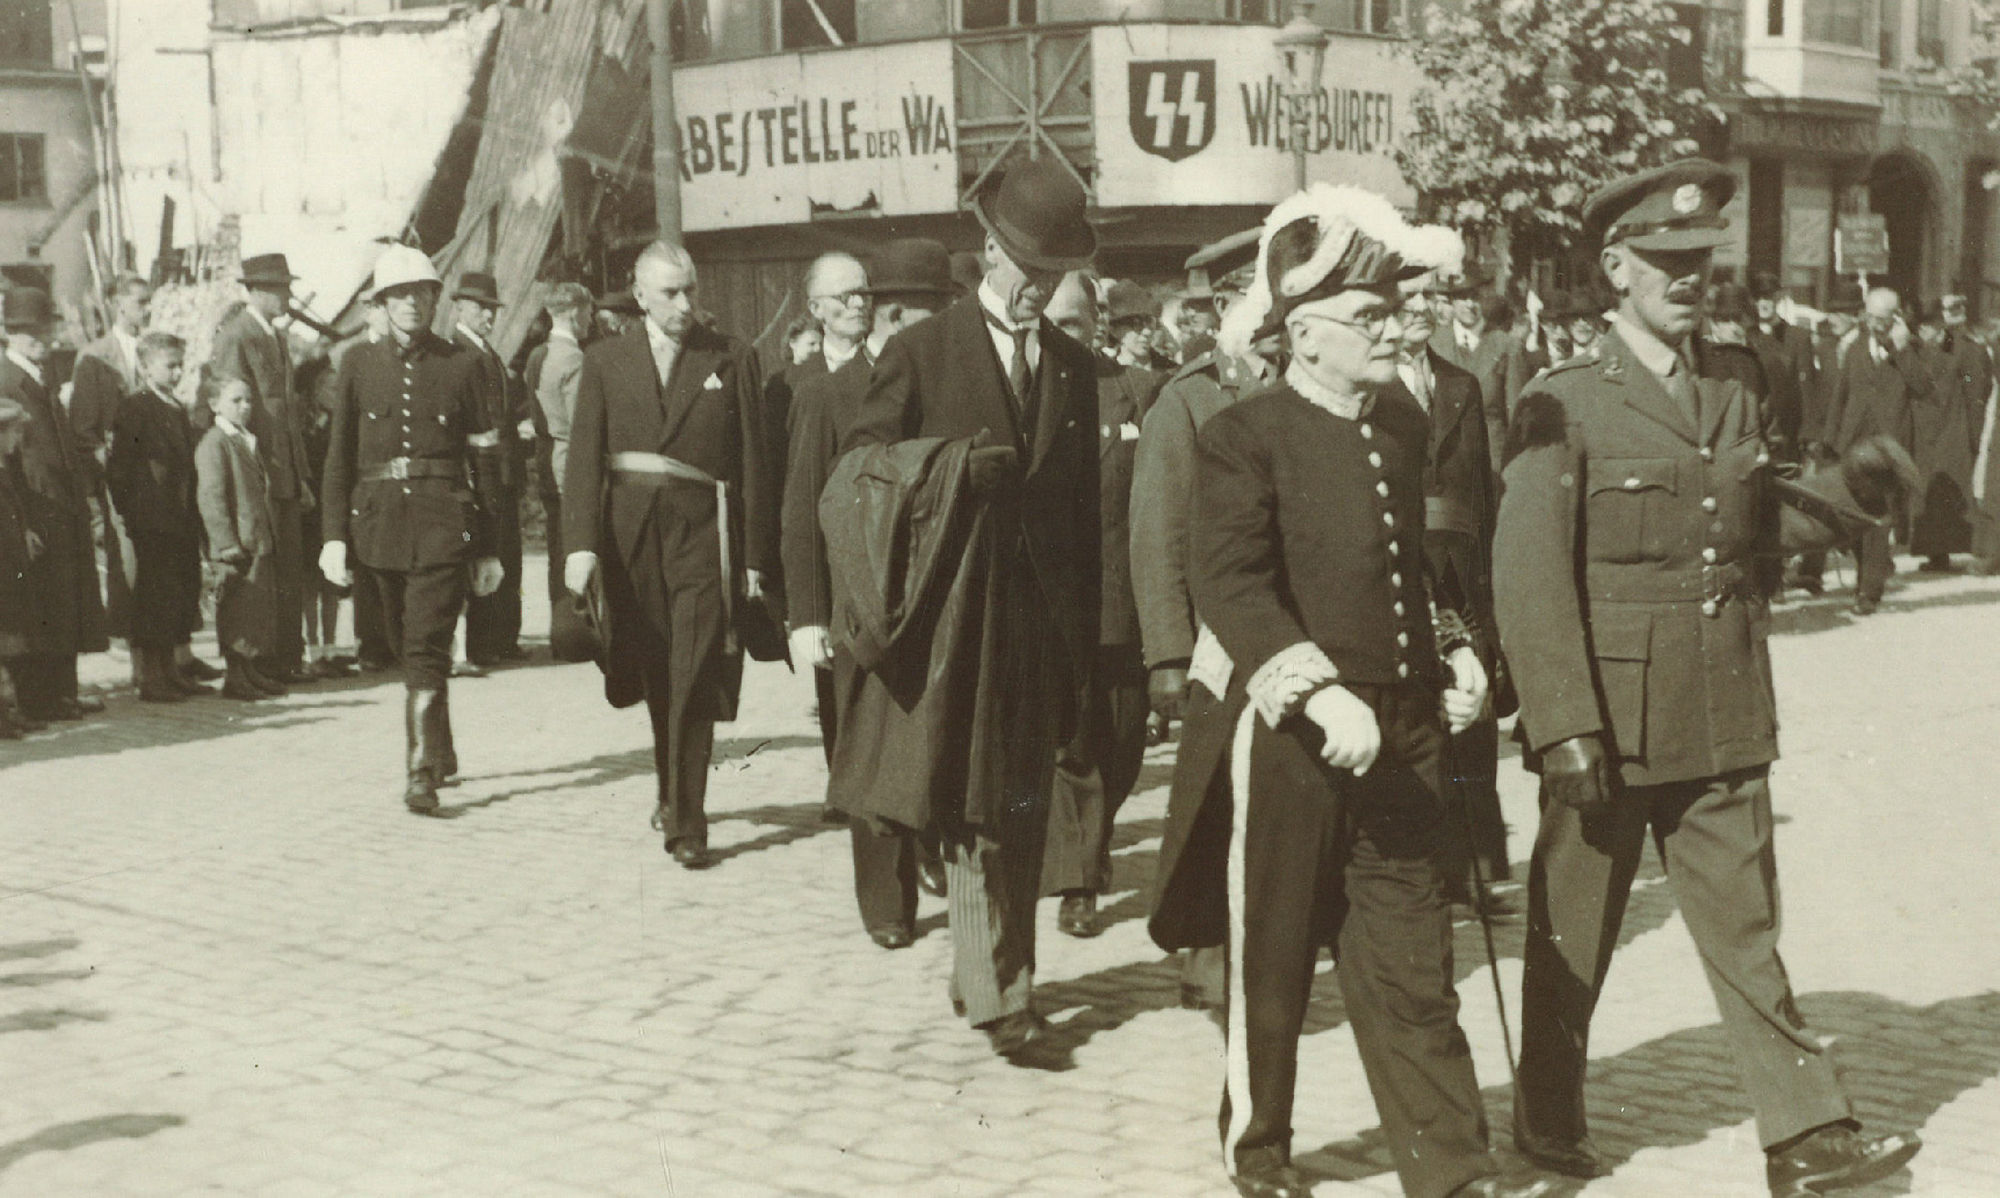 Bevrijdingsdagen begin september 1944